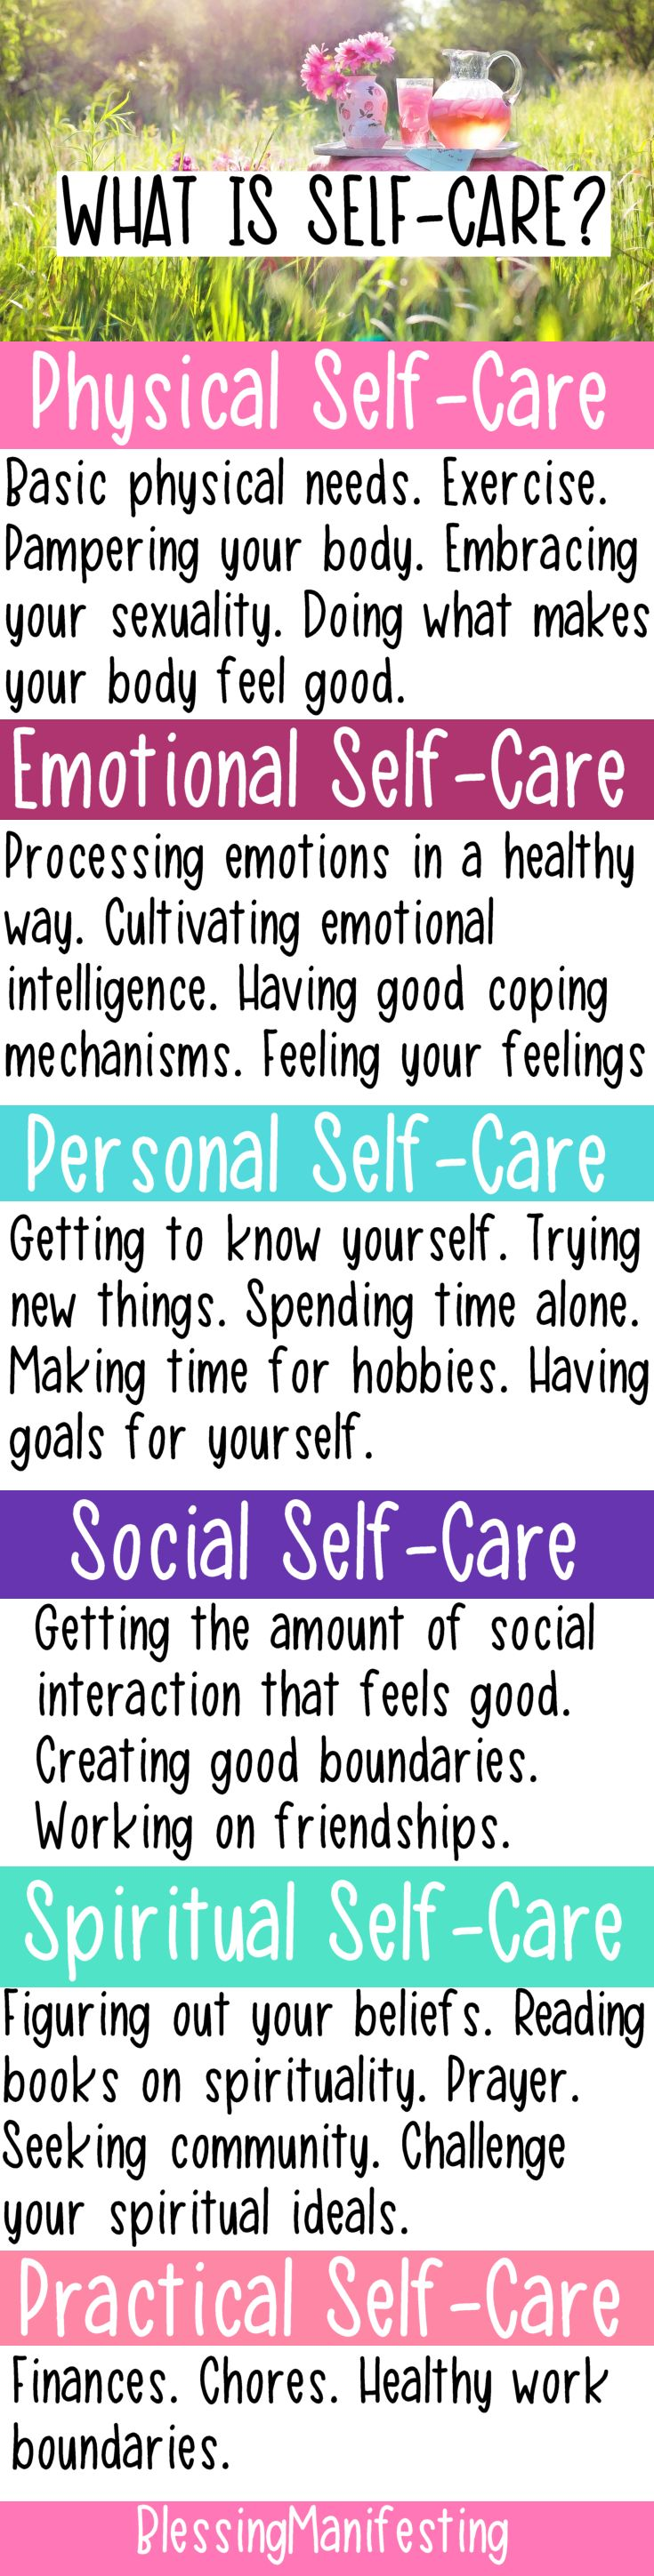 Self care. Important ways to take care of yourself, your health and your mental wellbeing.